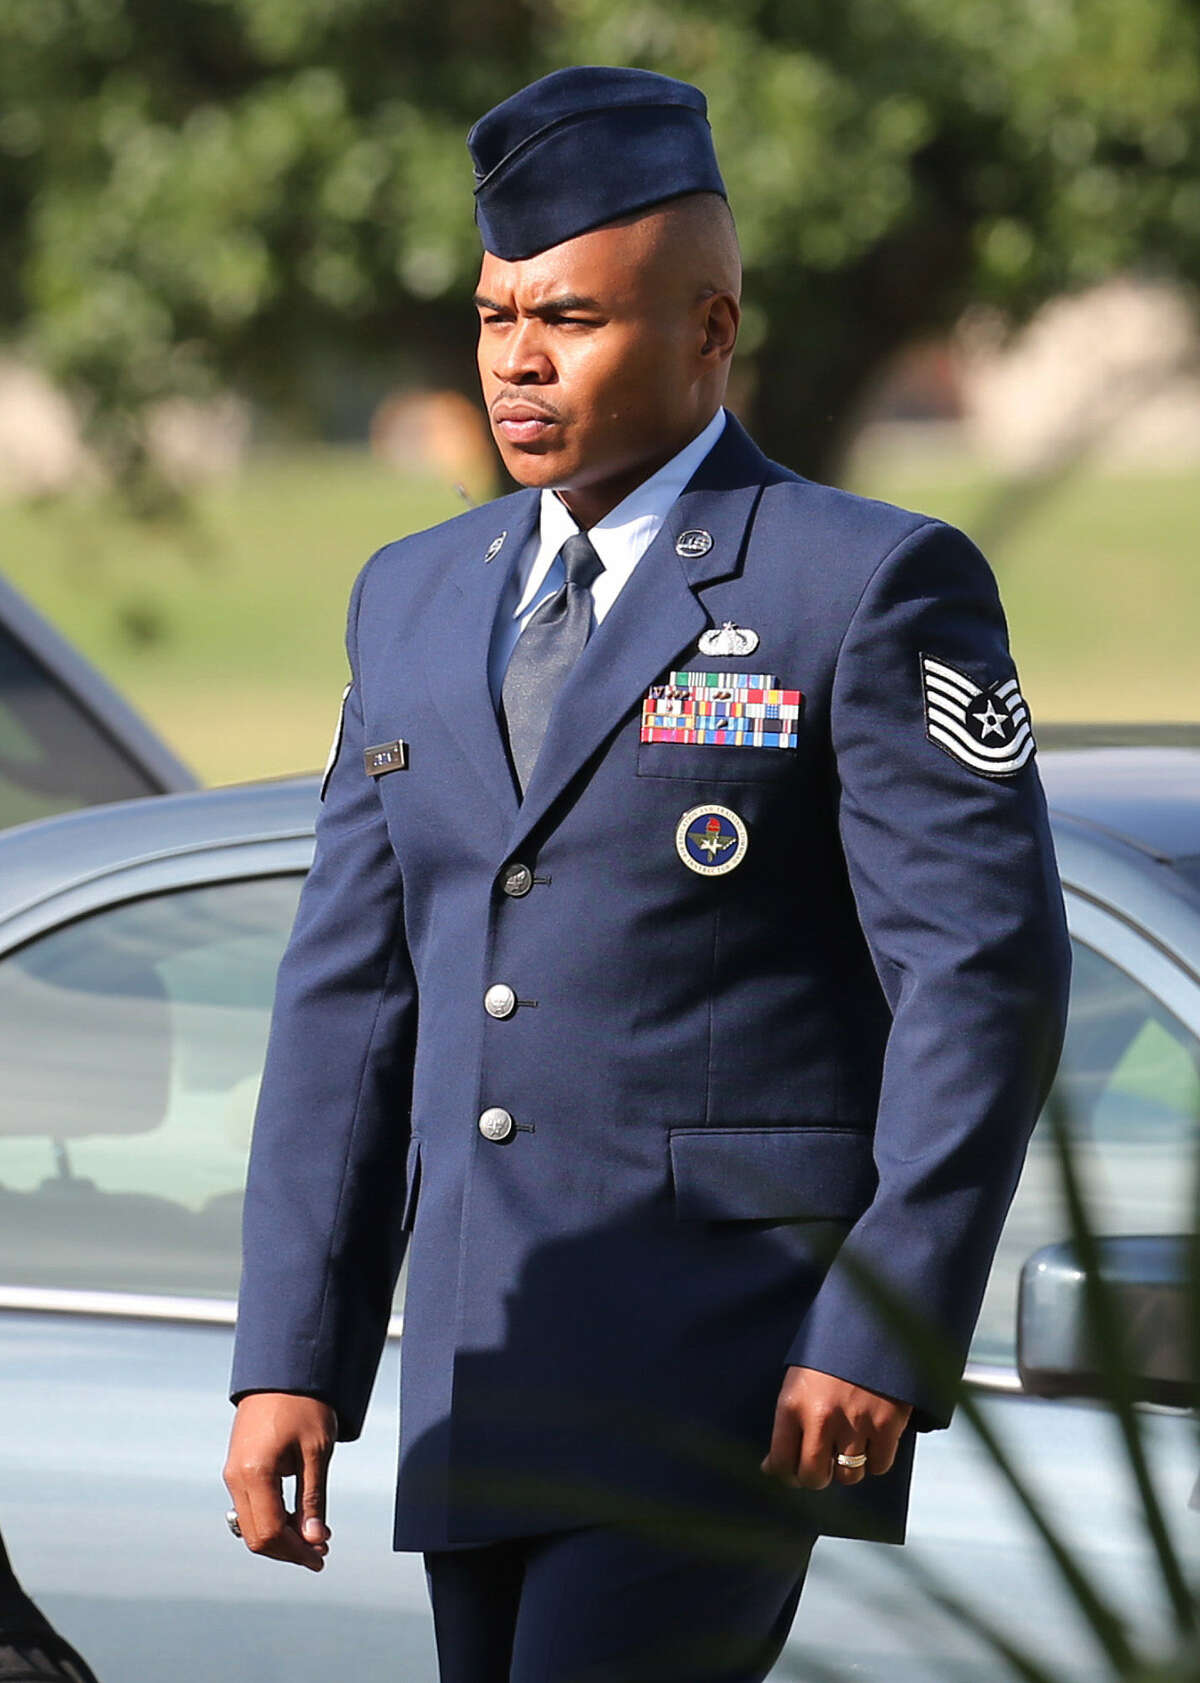 """Tech Sgt. Marc Gayden could get life in prison if convicted of the crimes """"Airman 1"""" is accusing him of."""